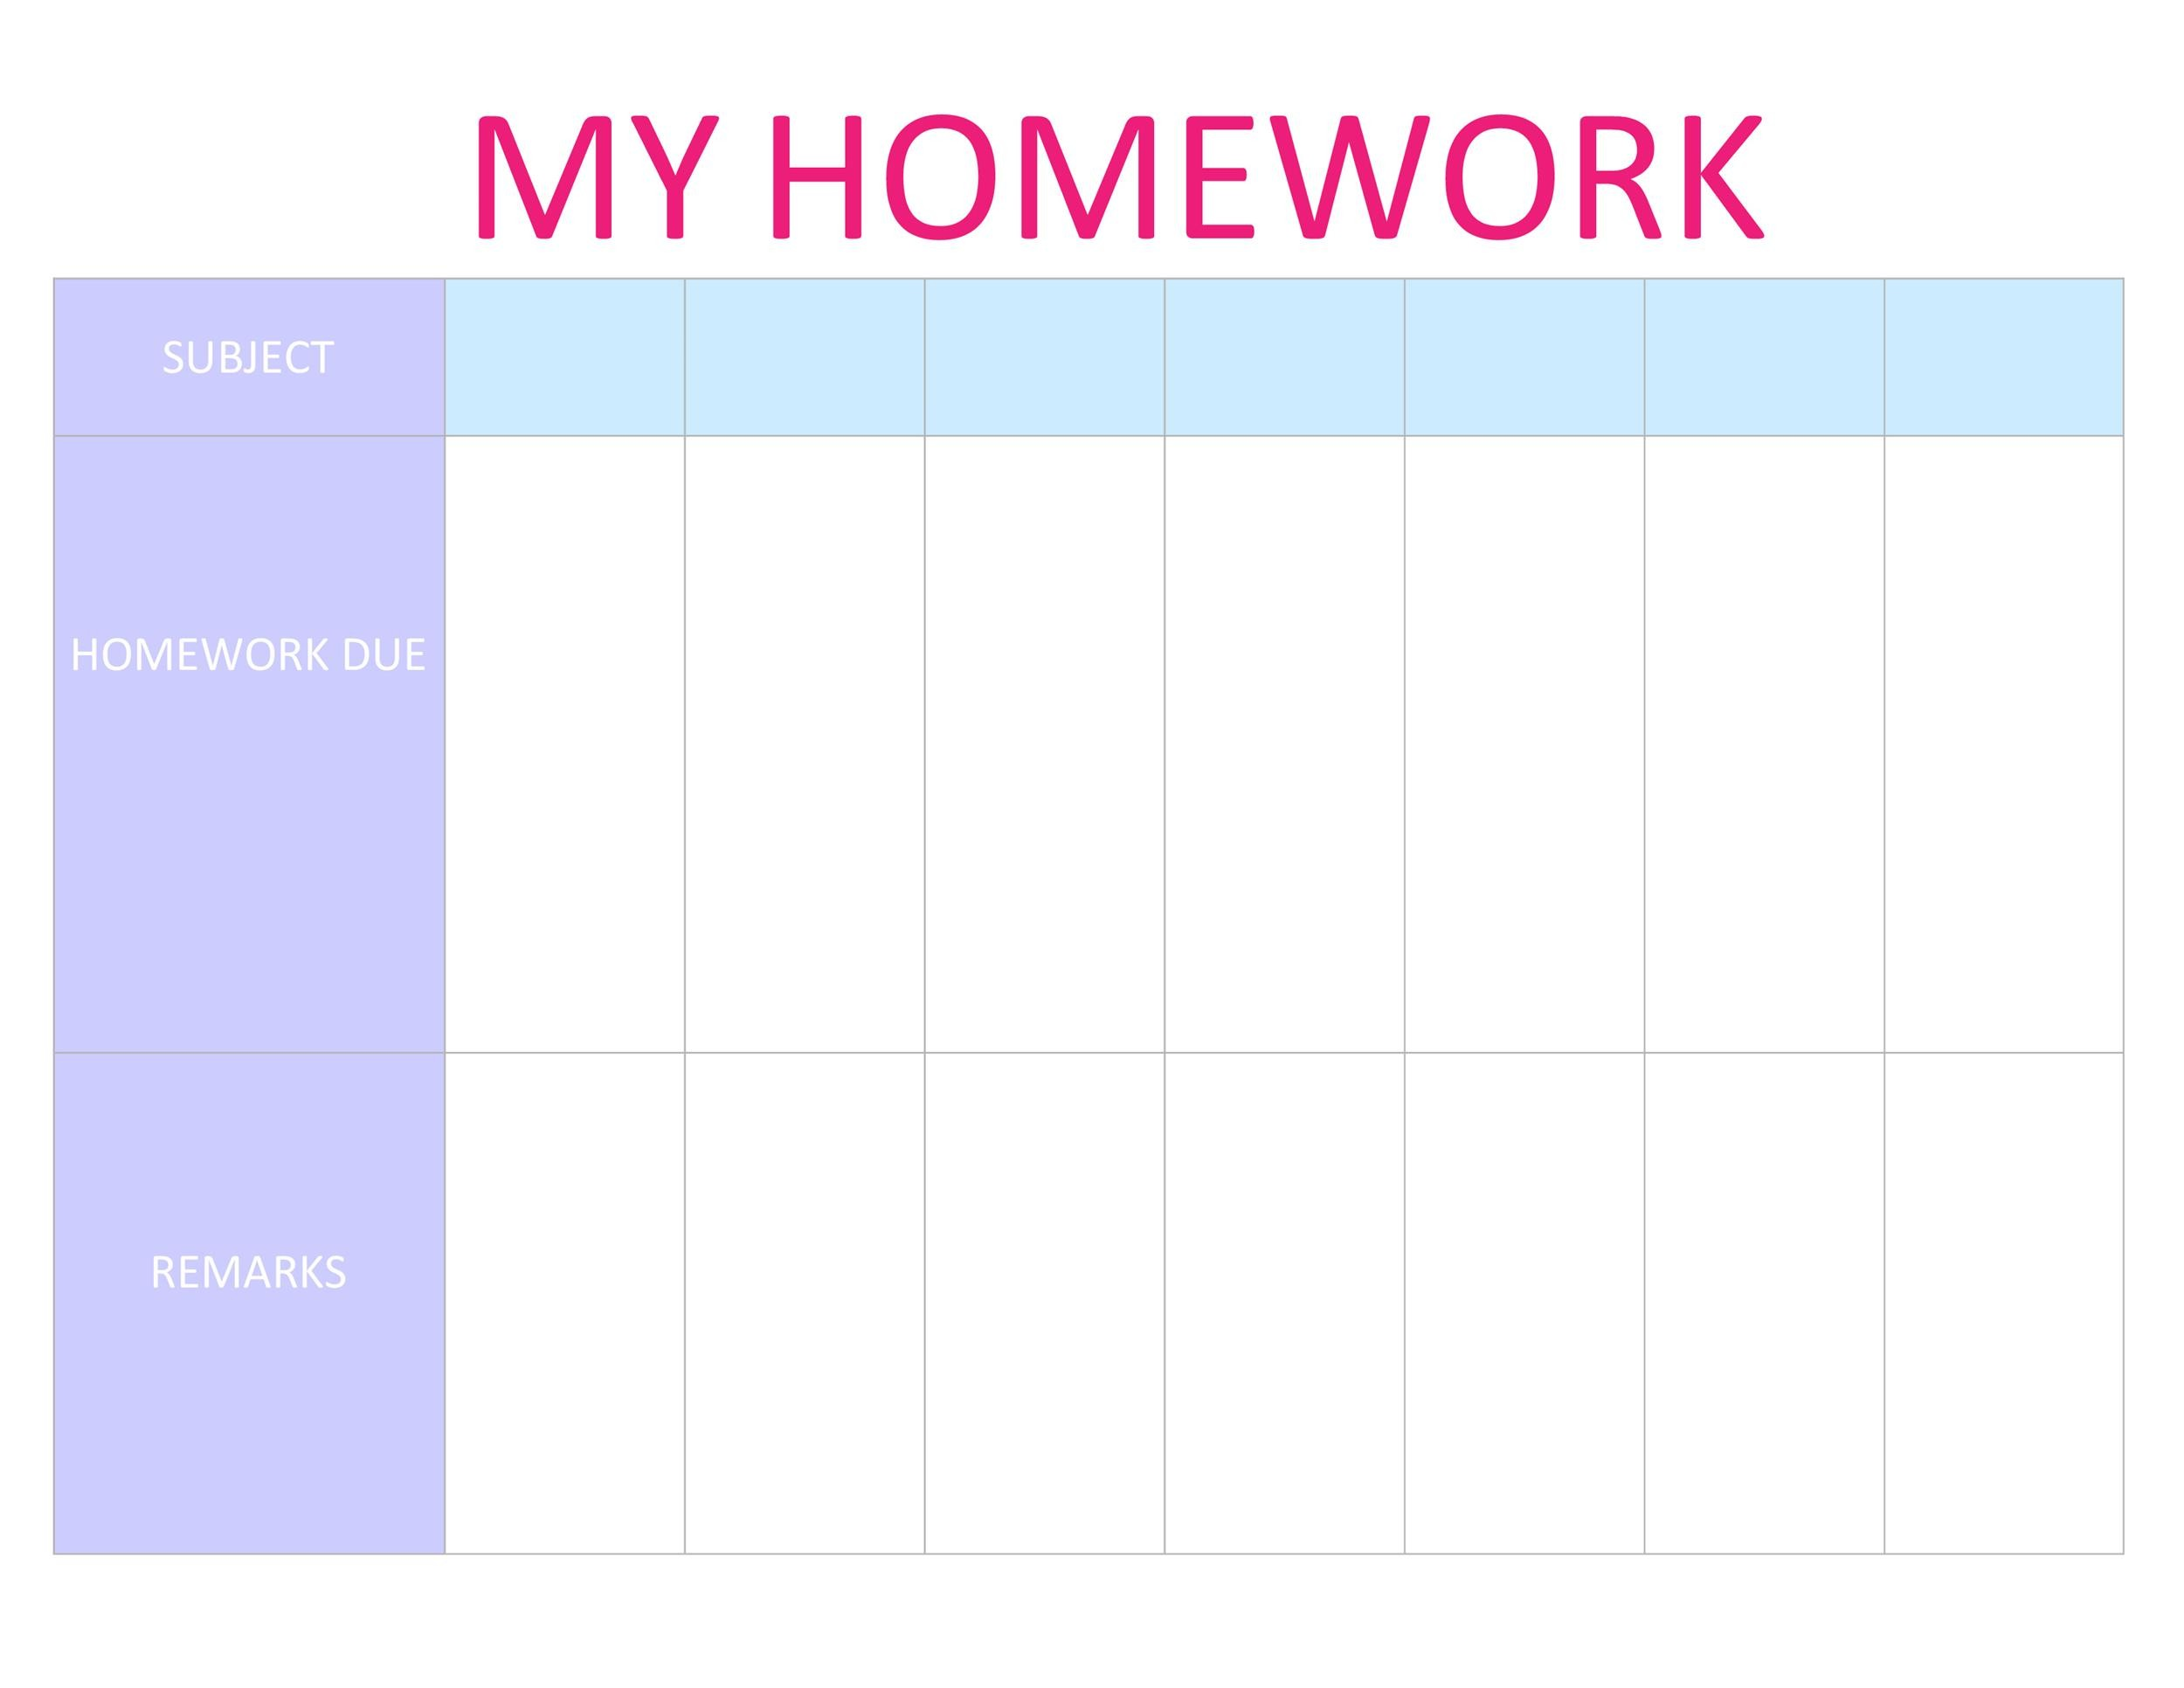 photograph relating to Homework Planner Printable identified as 37 Printable Research Planners (Simply the Great) ᐅ Template Lab